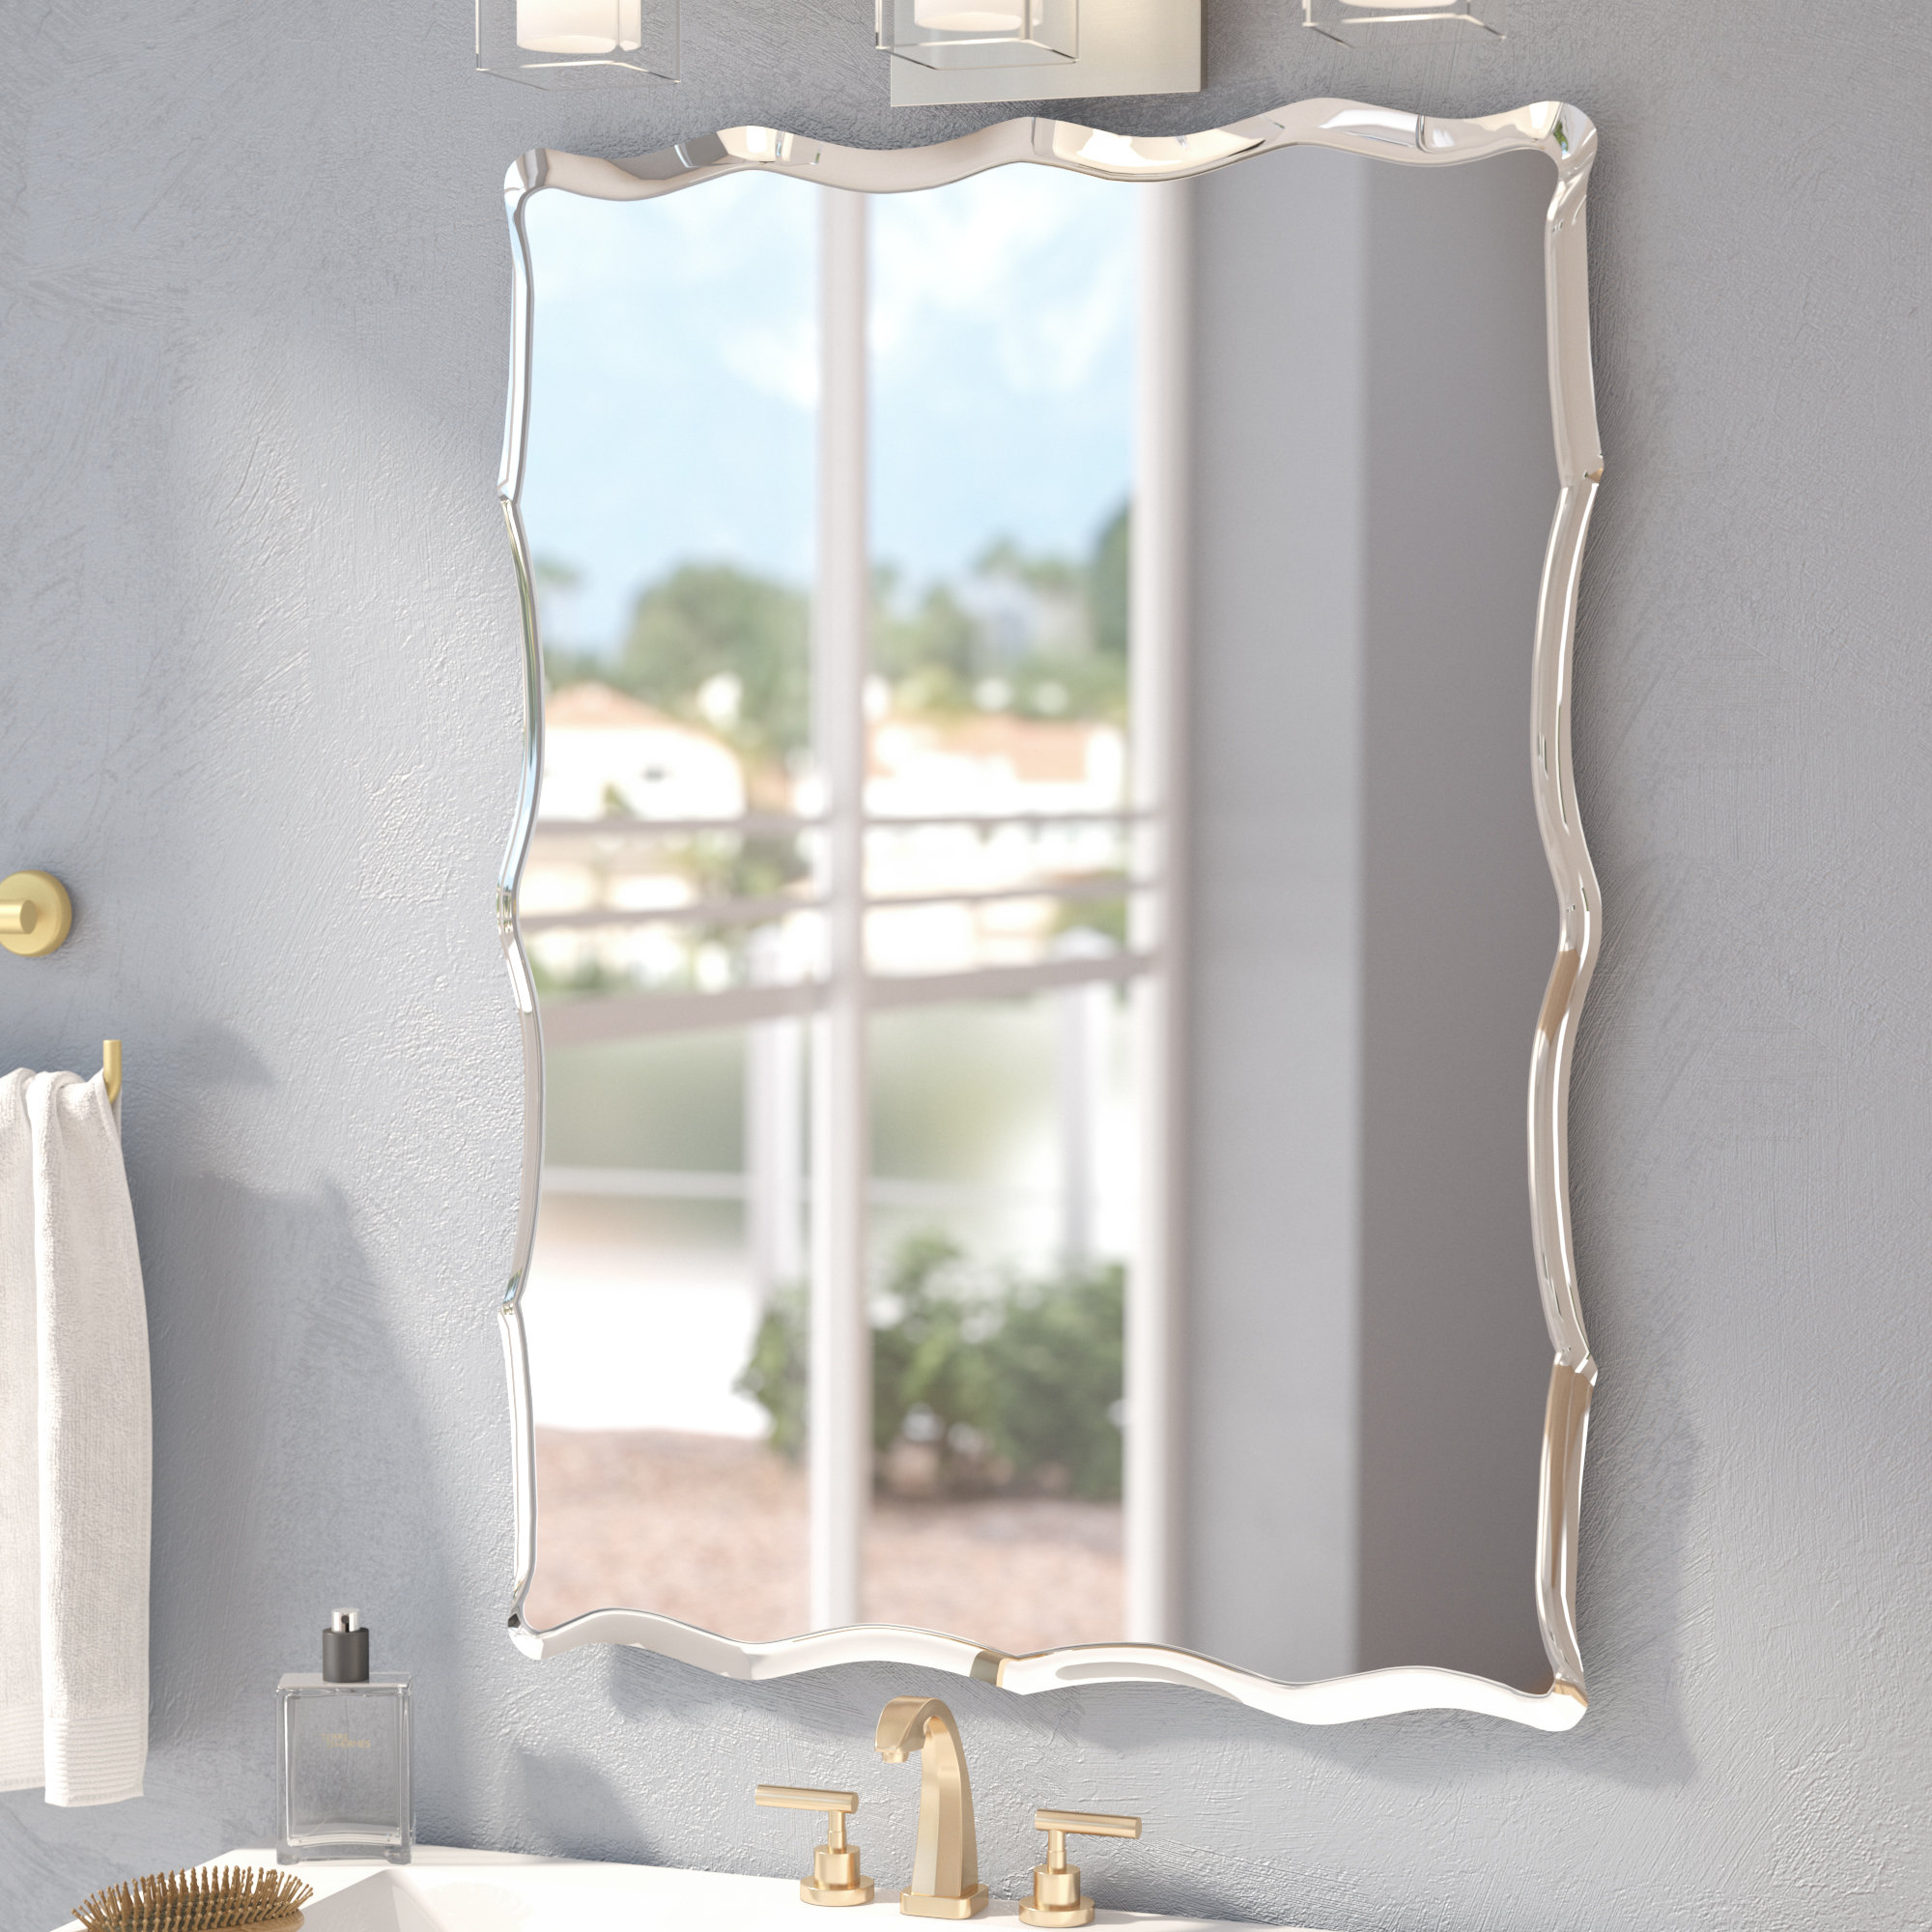 Wade Logan Estefania Frameless Wall Mirror & Reviews | Wayfair Inside Logan Frameless Wall Mirrors (View 4 of 20)